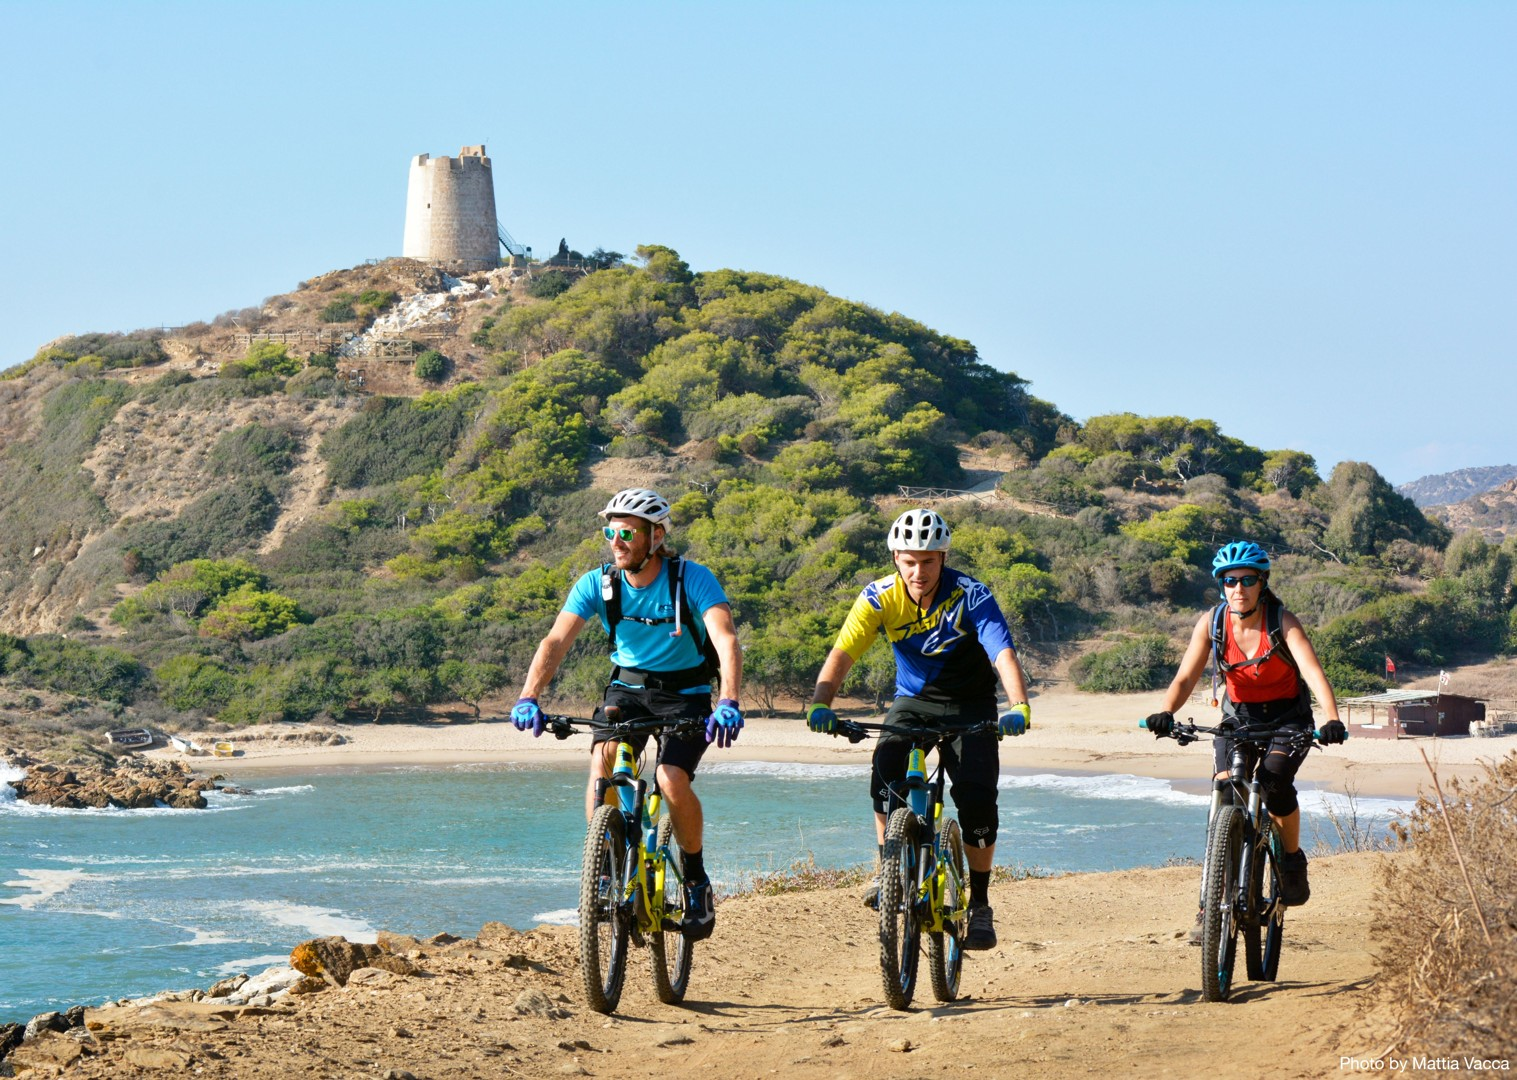 mediterranean-mountain-bike-holiday-enduro-in-italy-sardinia.jpg - Sardinia - Sardinian Enduro - Guided Mountain Bike Holiday - Mountain Biking